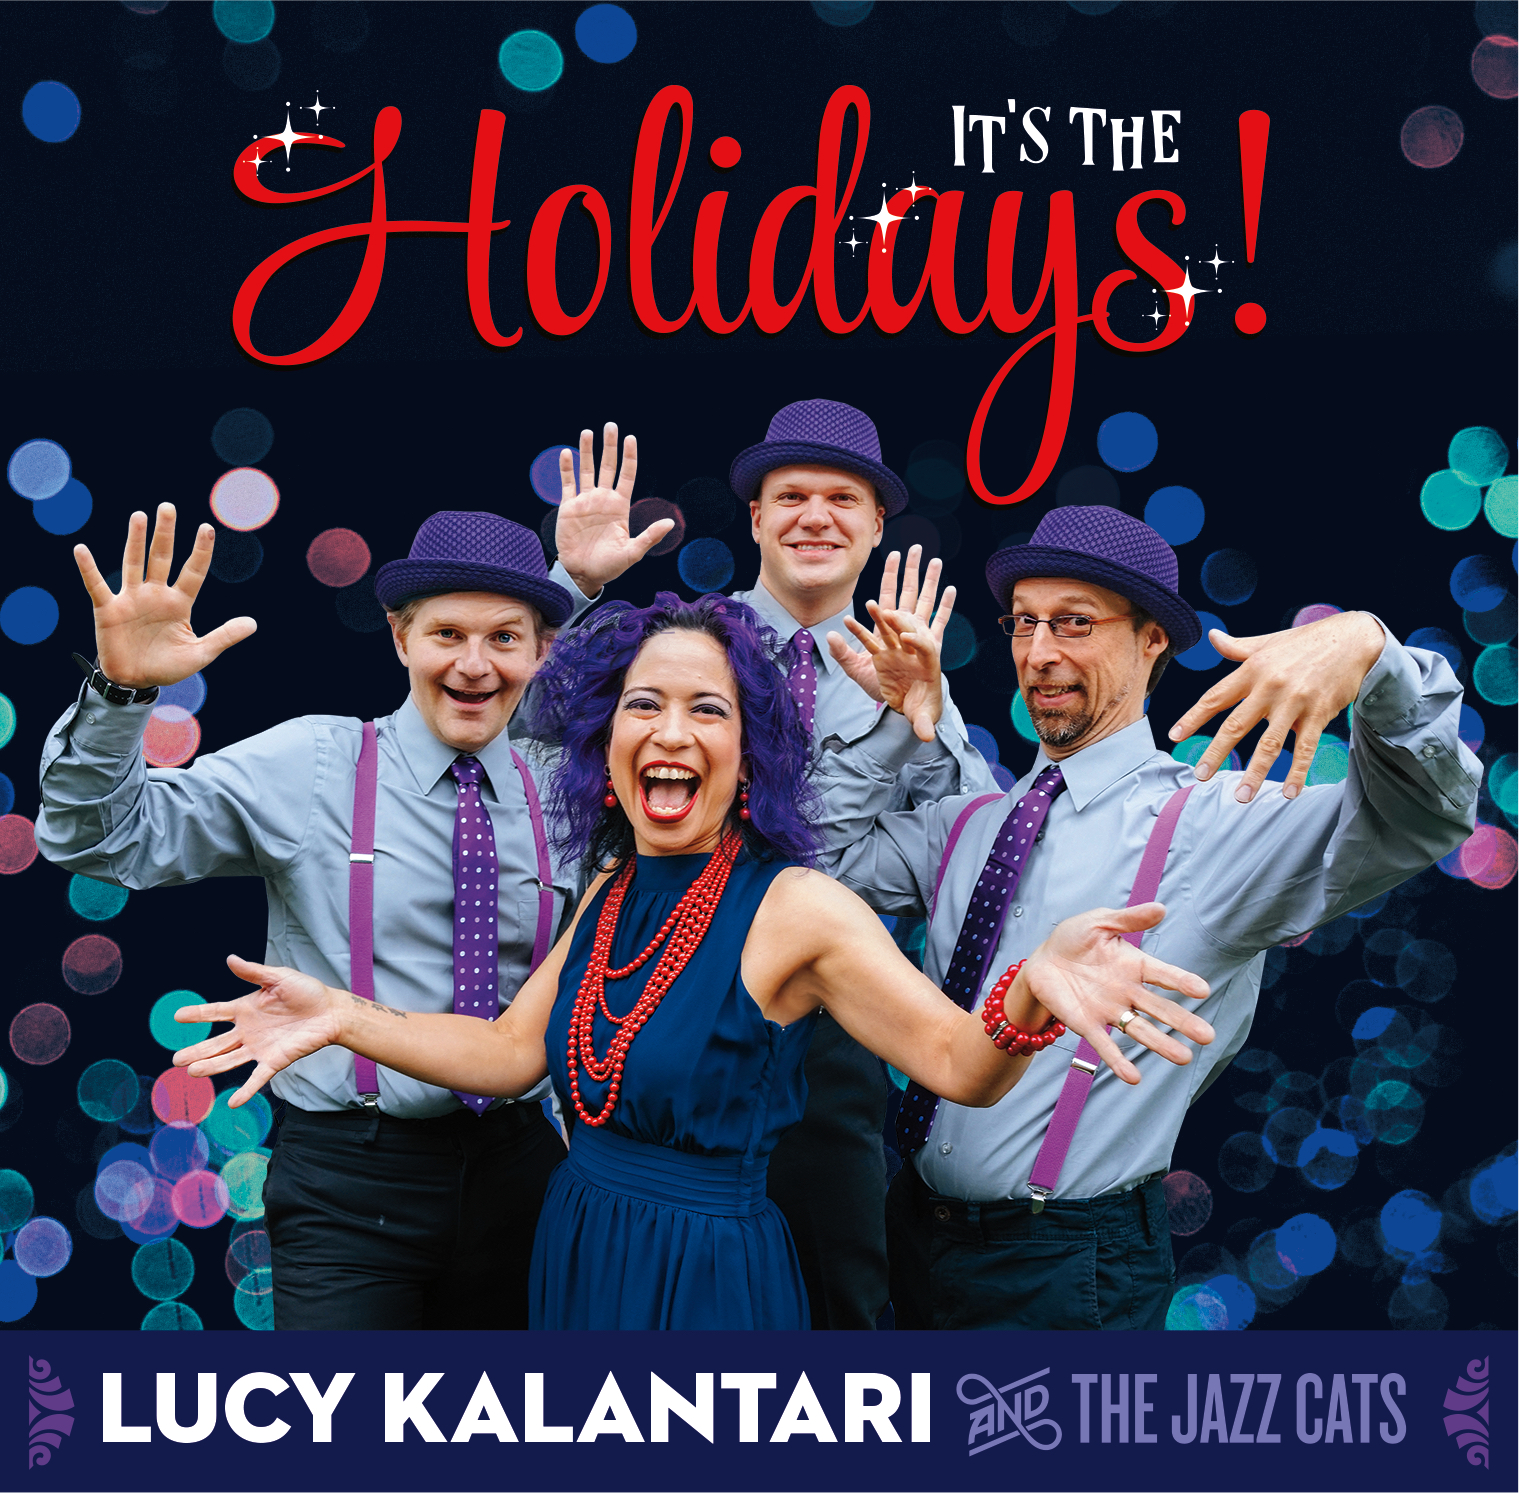 It's The Holidays! (2017) by Lucy Kalantari and The Jazz Cats